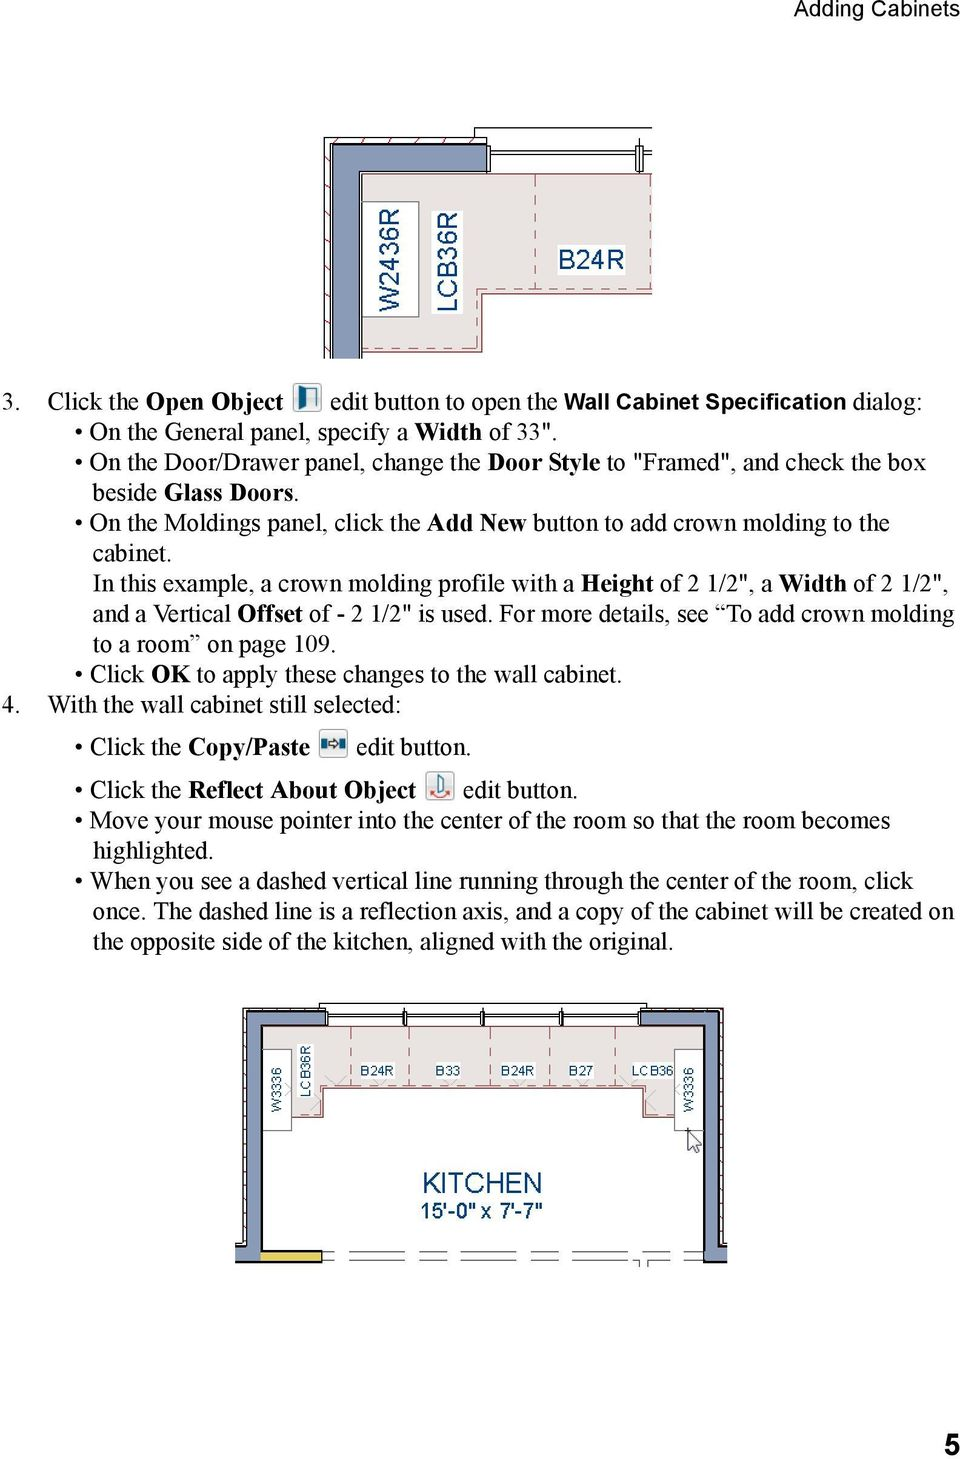 "In this example, a crown molding profile with a Height of 2 1/2"", a Width of 2 1/2"", and a Vertical Offset of - 2 1/2"" is used. For more details, see To add crown molding to a room on page 109."